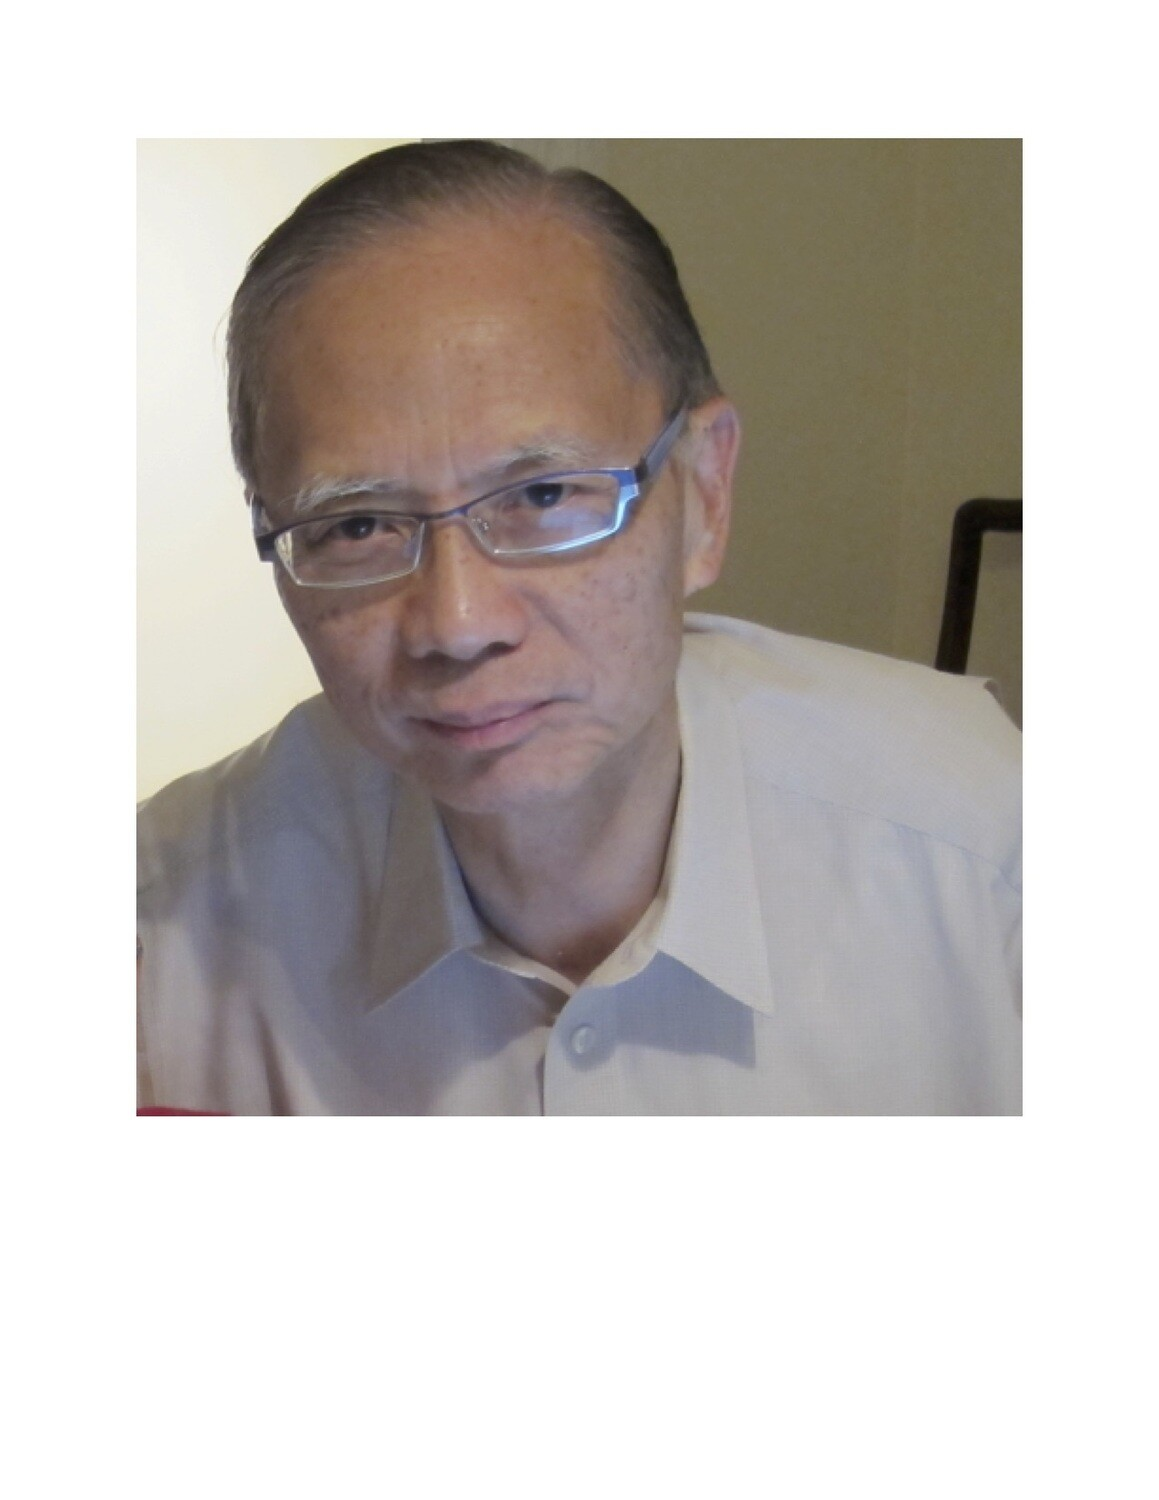 Blossoms in the valley emerging from the depths of mental illness by Dr. Thomas Choy